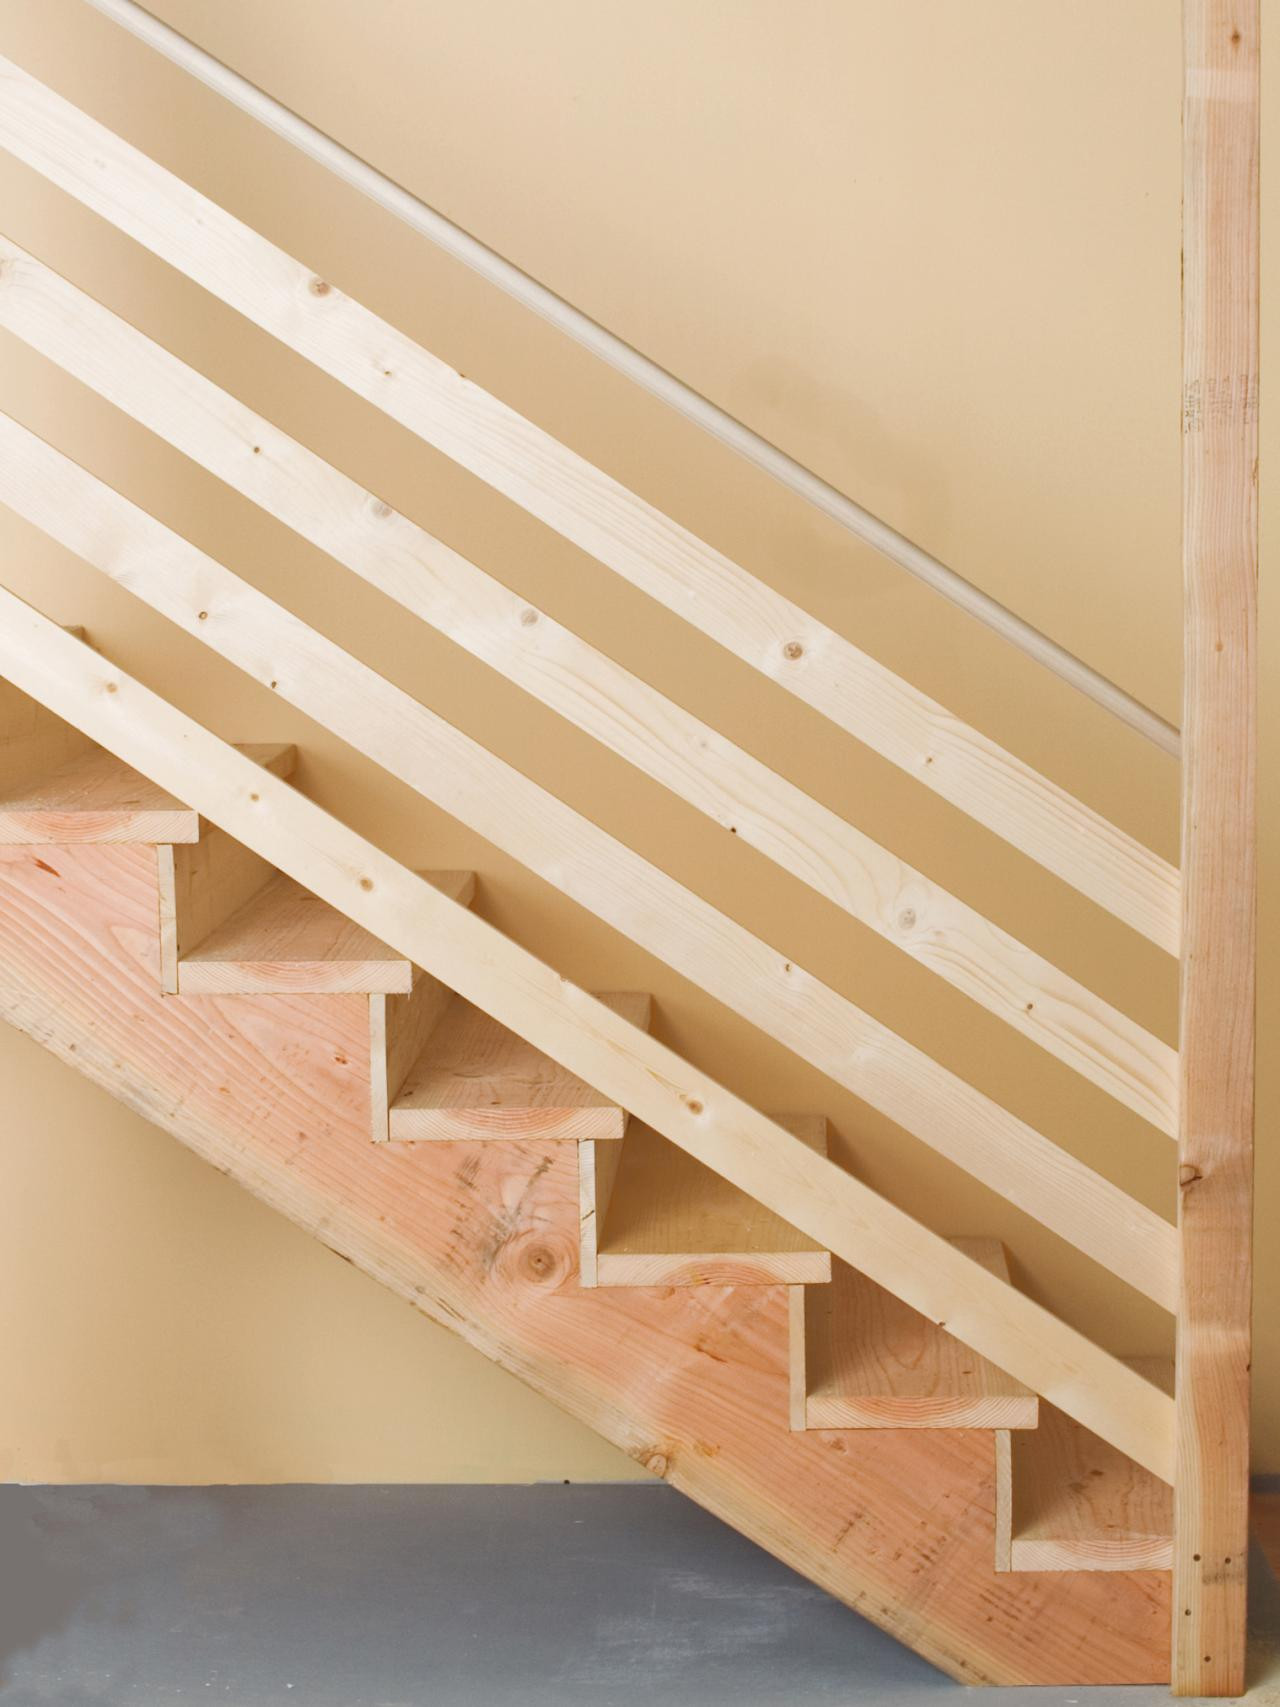 Best ideas about Basement Stair Railing . Save or Pin How Can I Set Up A Removable Stair Railing Home Now.